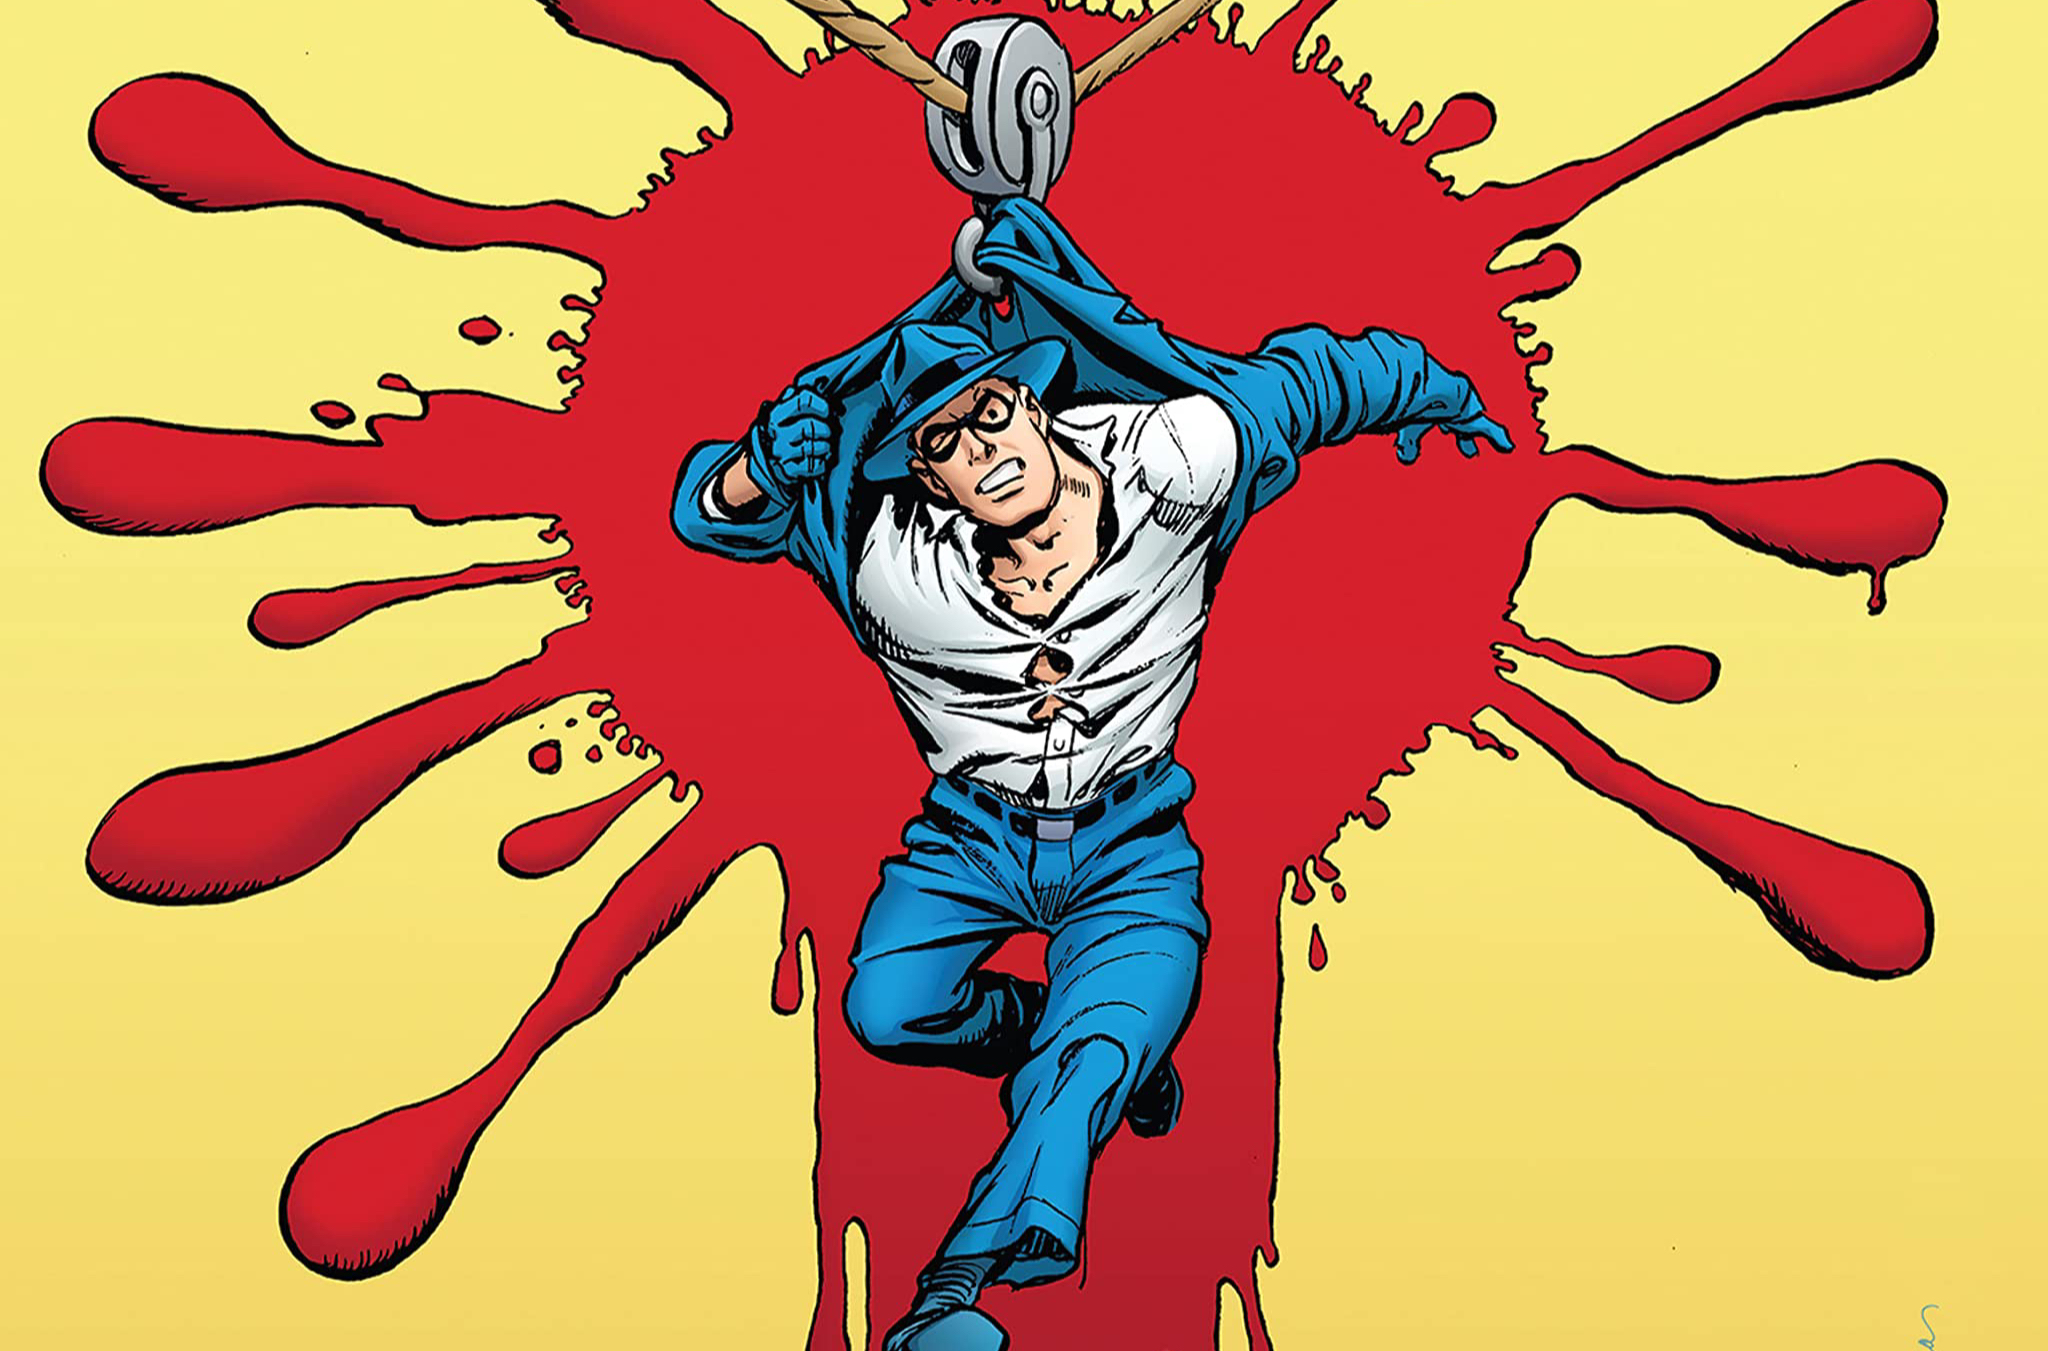 A comic book image of a Will Eisner character